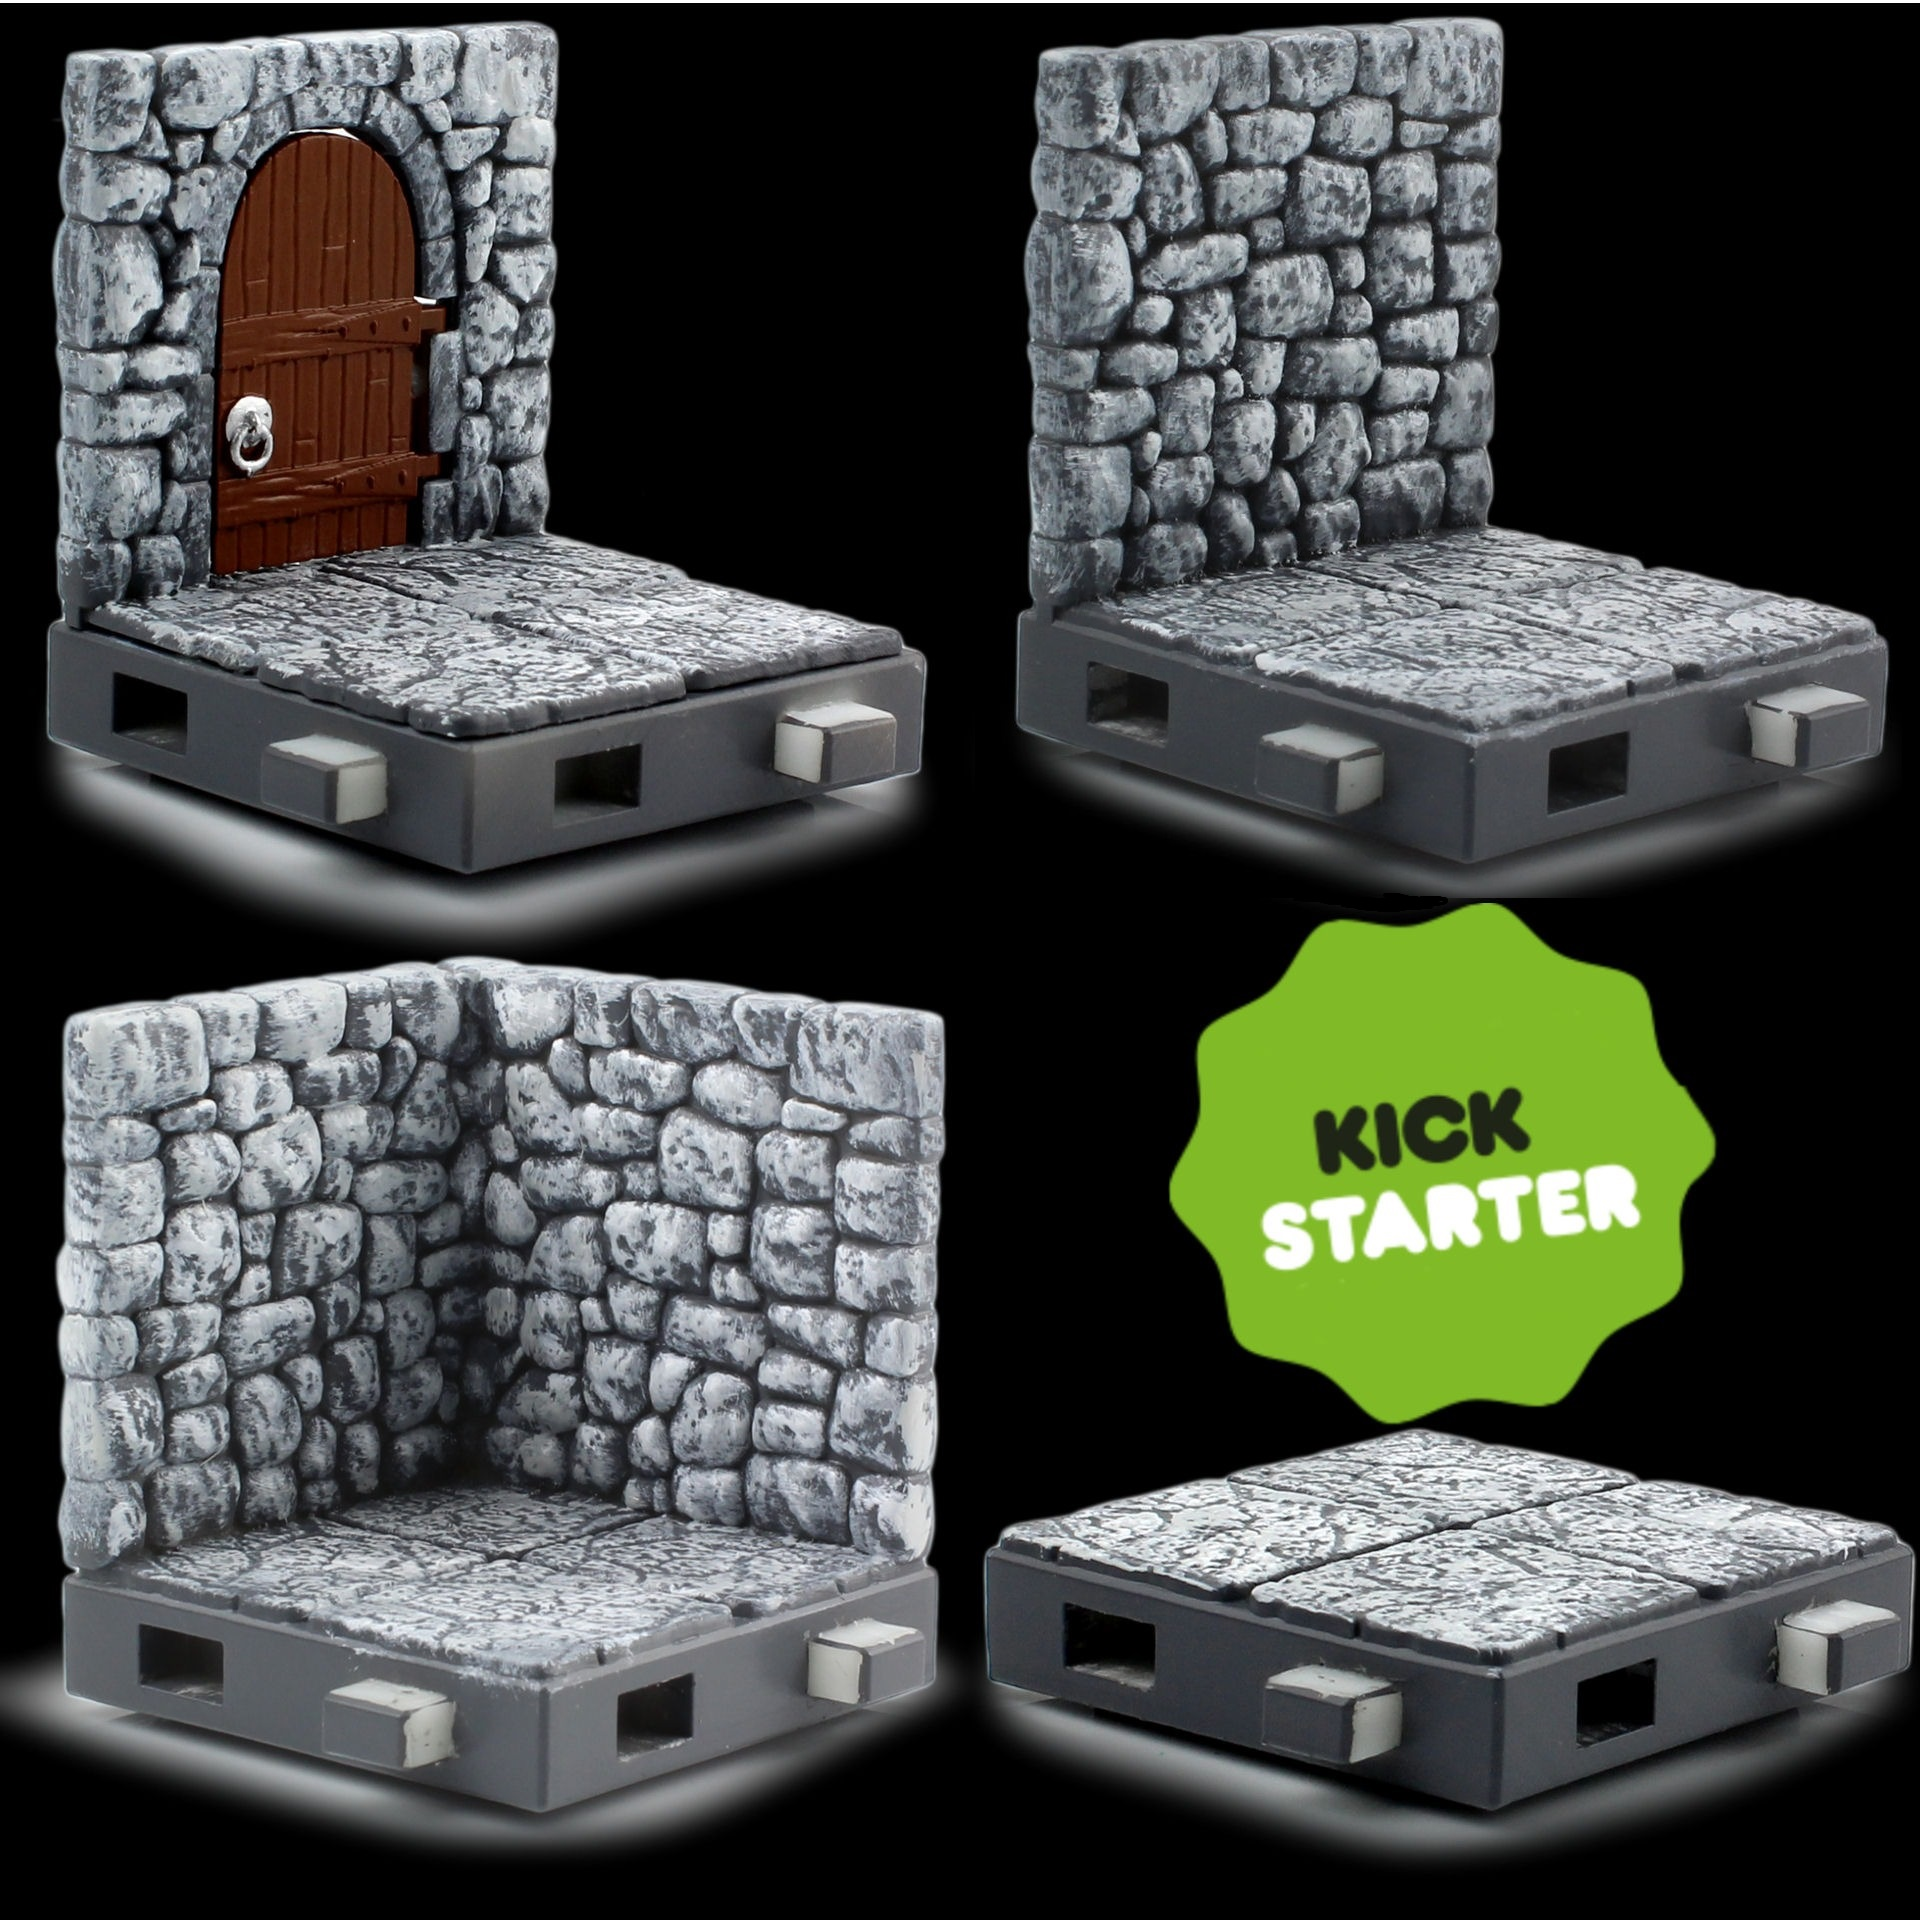 Zfigs Dungeon Tiles,' Toy Vault's Affordable Tabletop Gaming